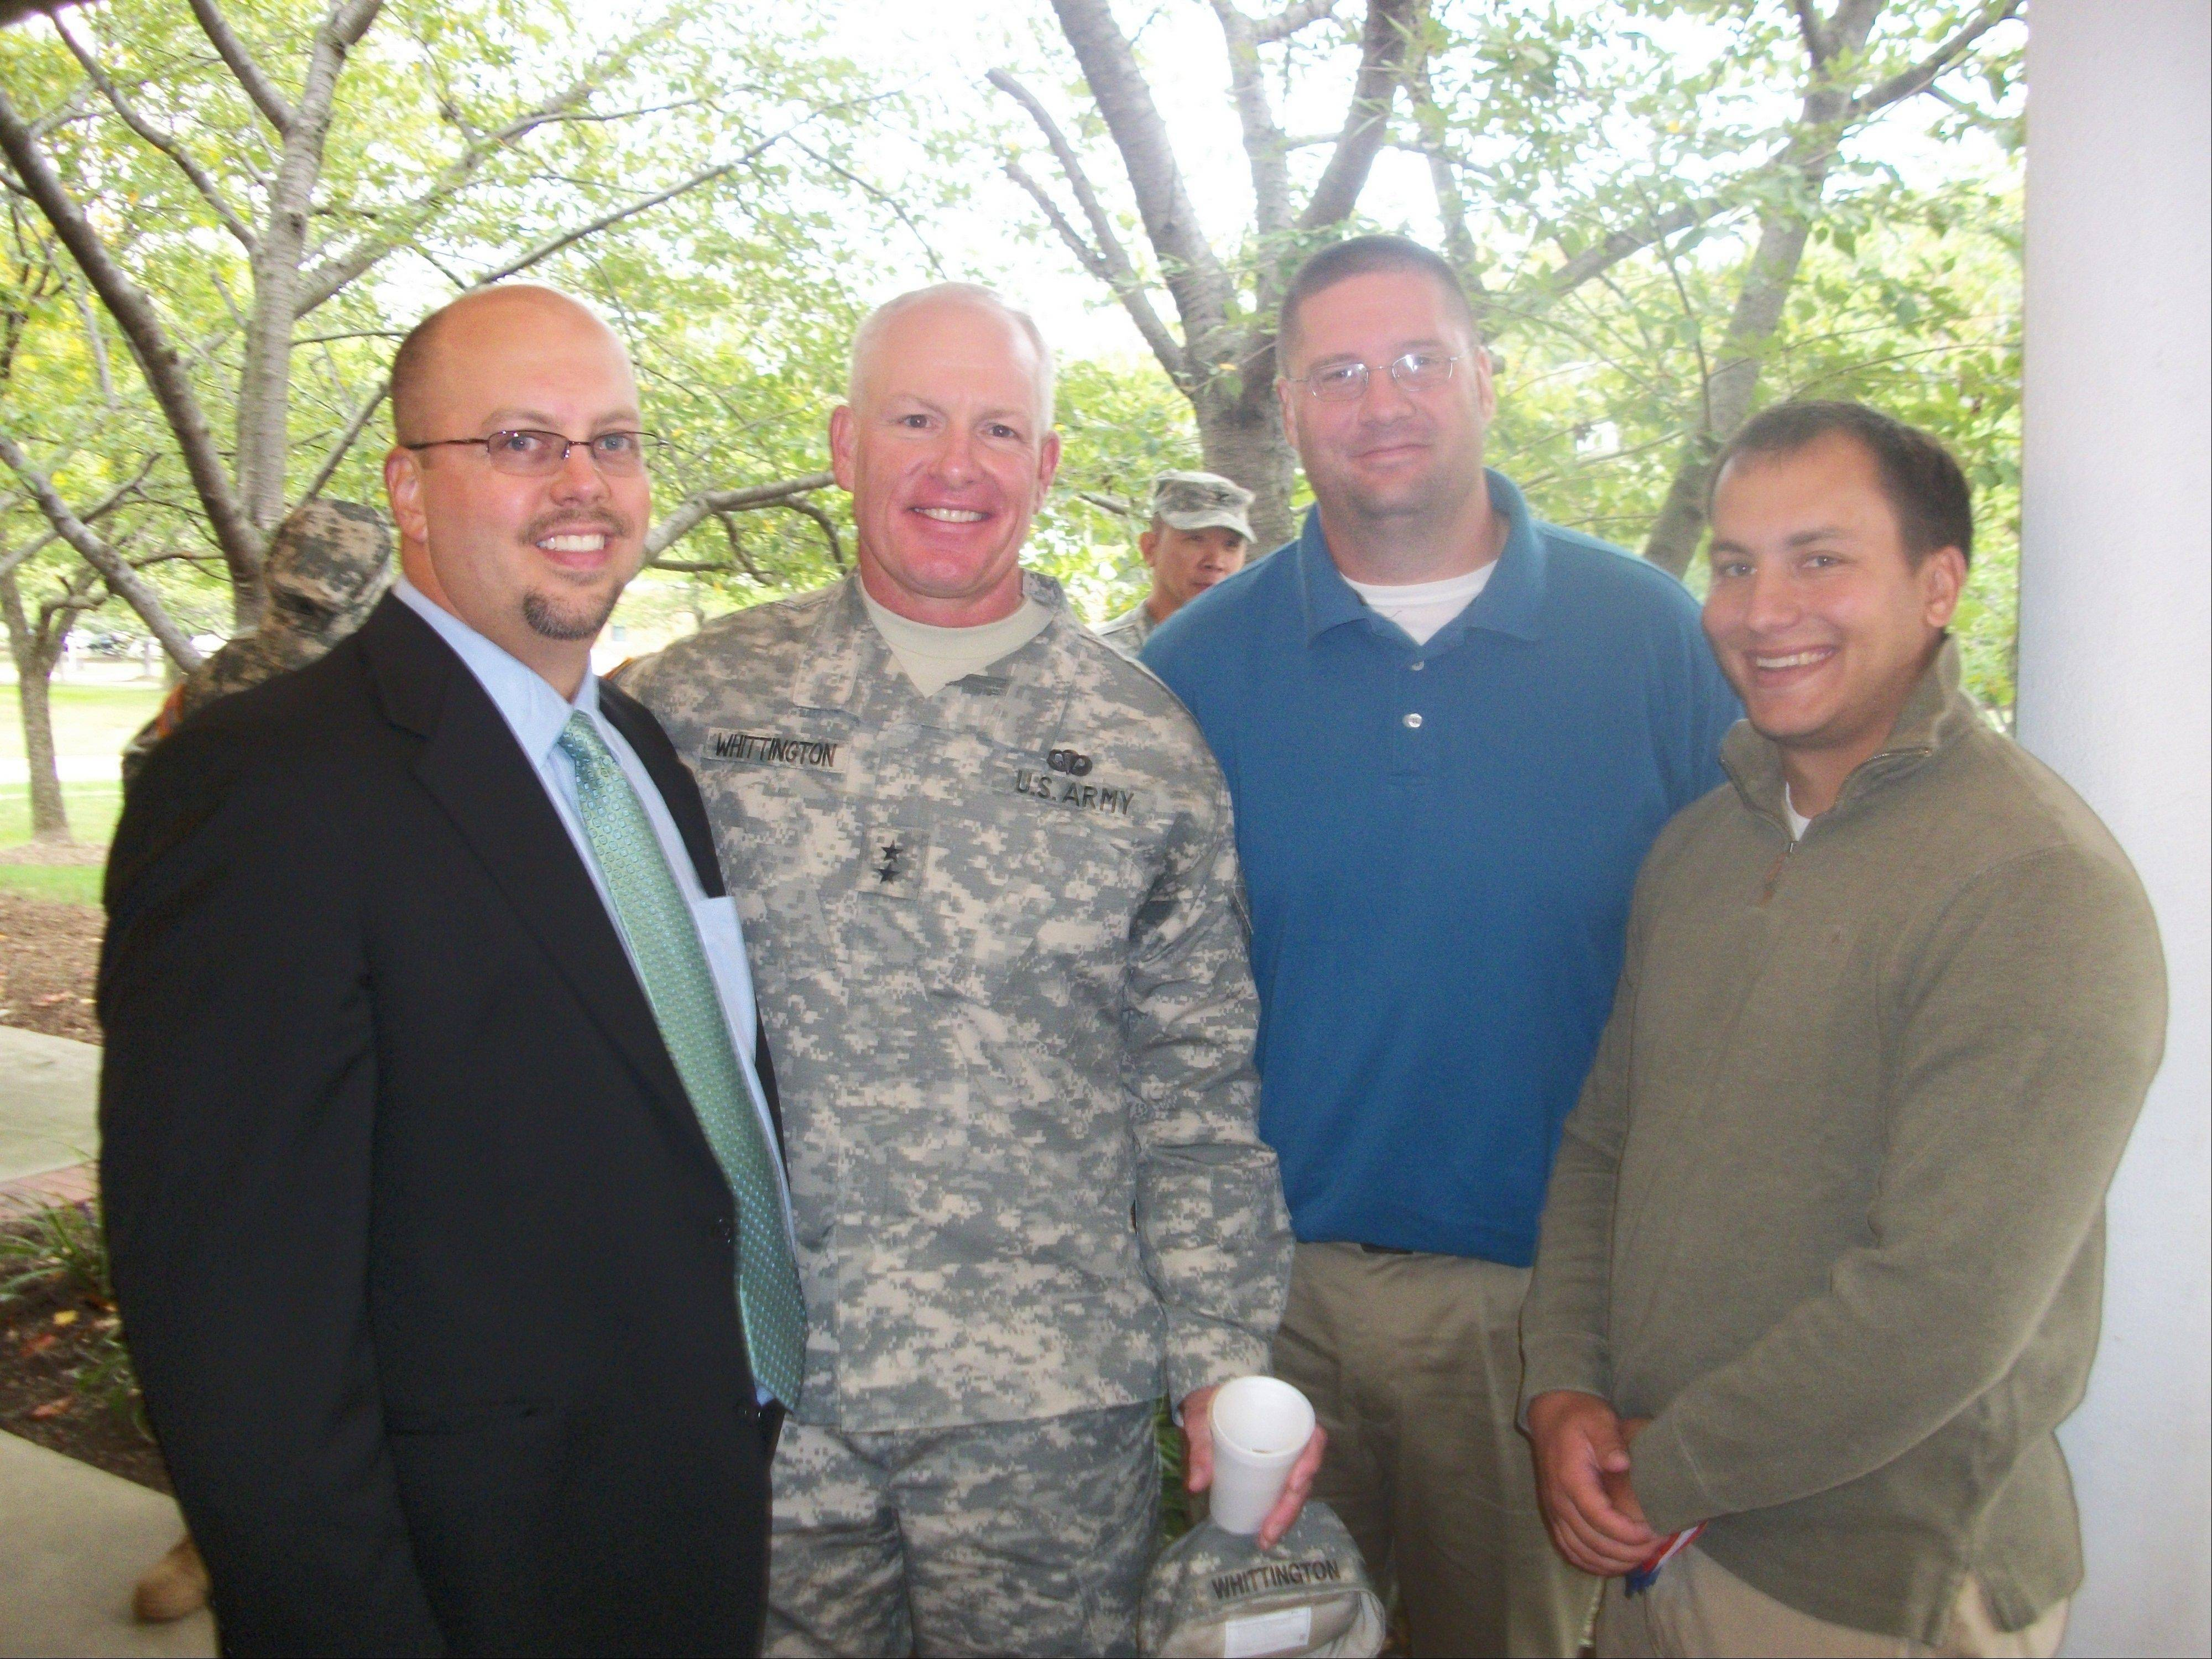 On the weekend of Oct. at Fort Belvoir, Va., General Charles Whittington, Jr. - known as Coach Whitt to the Grayslake Central football program. - was presented with his second star at the 29th Infantry's Change of Command Ceremony. For the past five seasons, Whittington has served as an assistant football coach at Grayslake Central. Head coach Ben Ault, assistant Danny Catanzaro, right, and former Rams head coach Nick Goshe, left, were included in the ceremony.